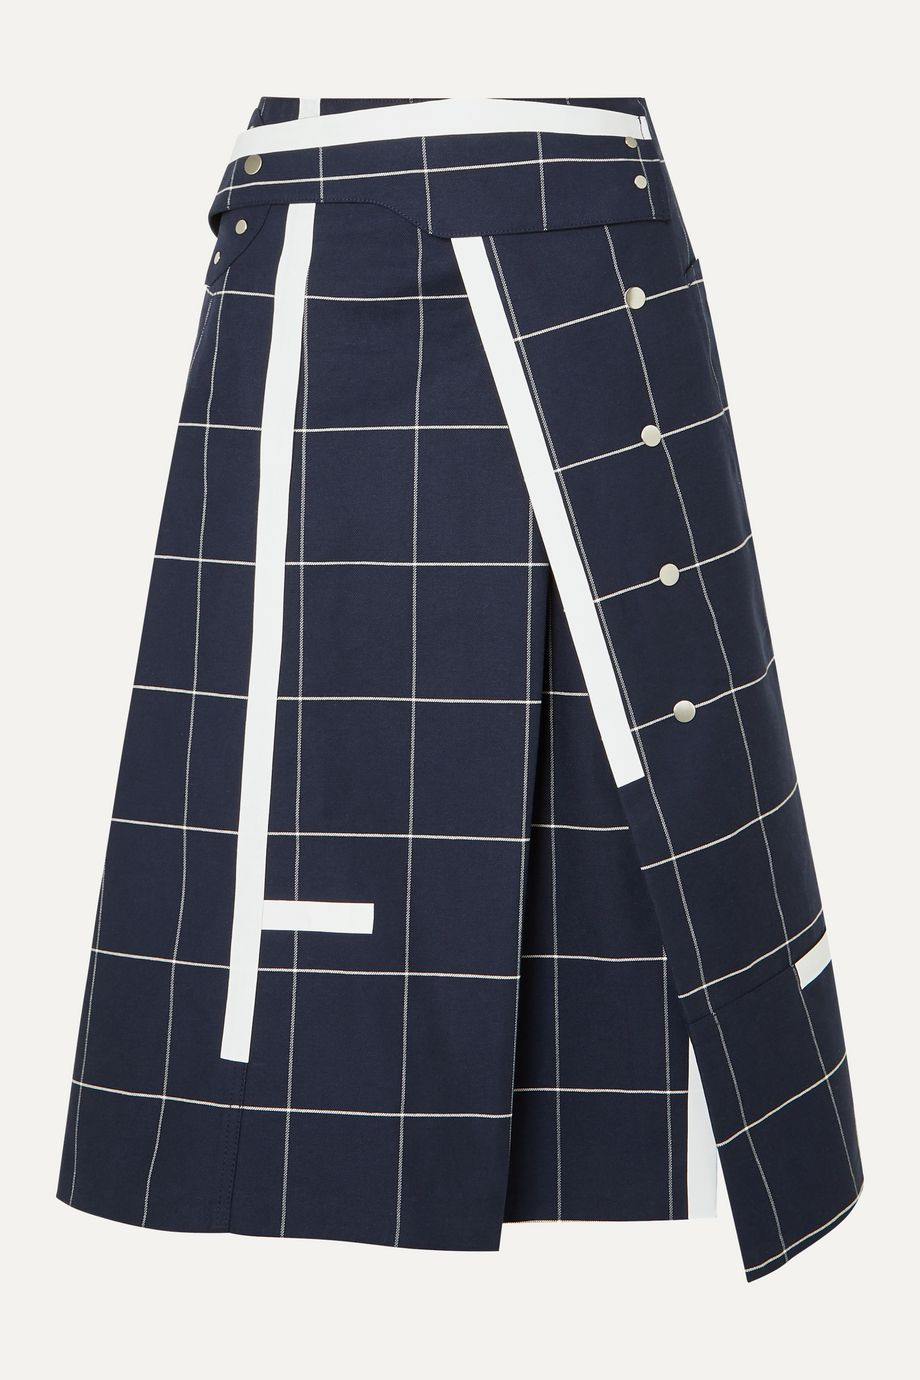 3.1 Phillip Lim Checked cotton-blend twill midi skirt